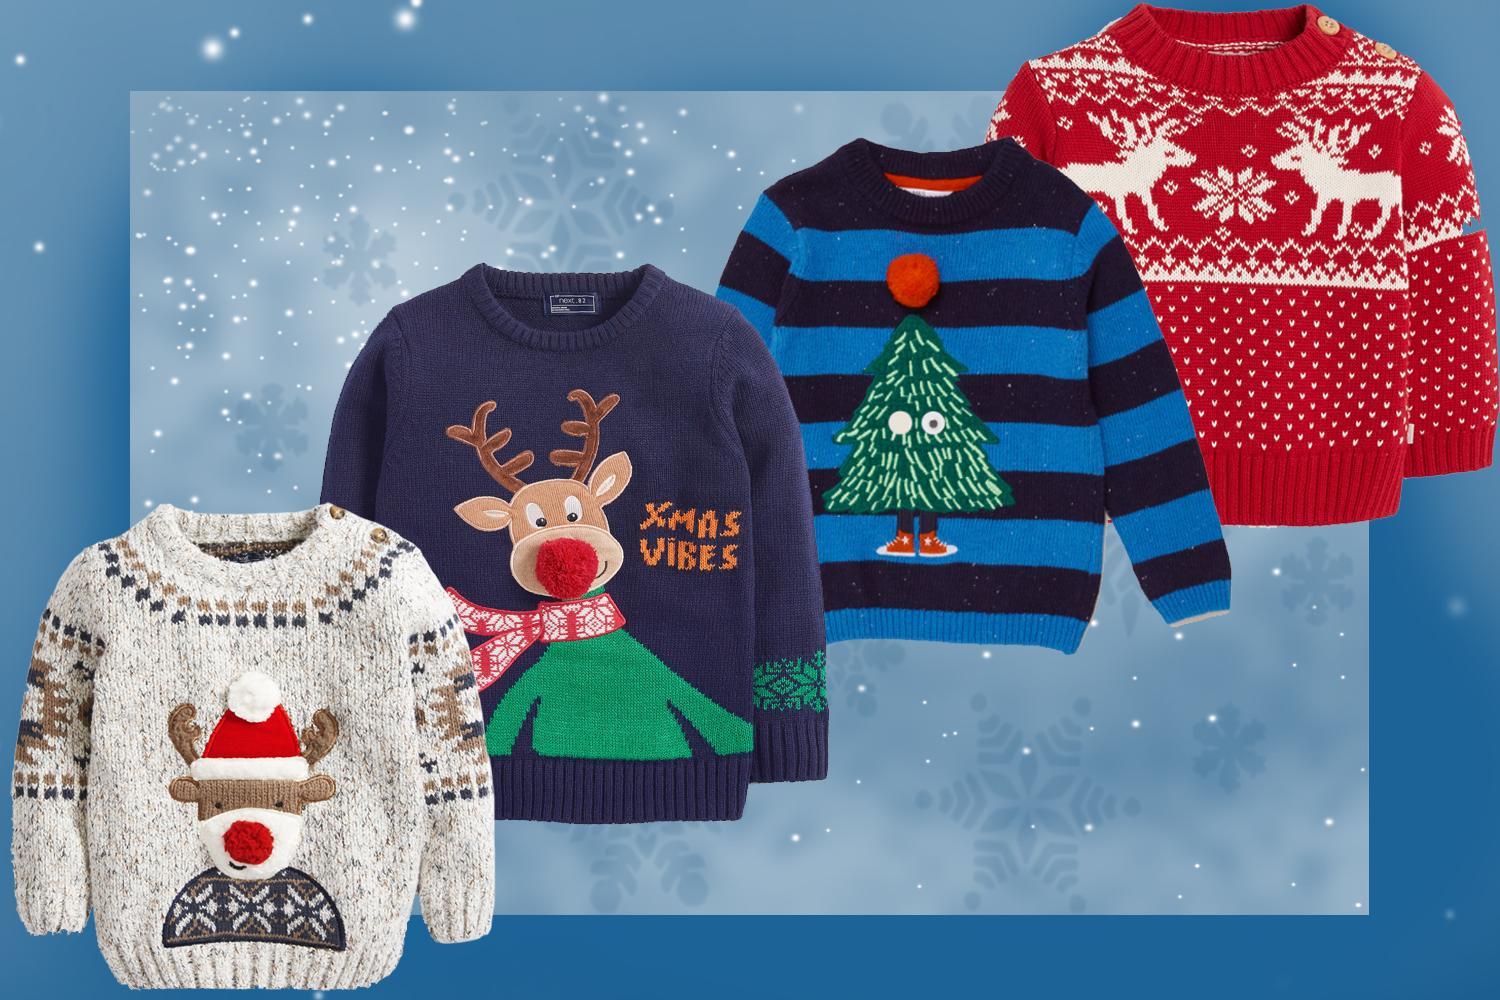 Best Christmas jumpers for children 2020: festive knits to get into the seasonal spirit